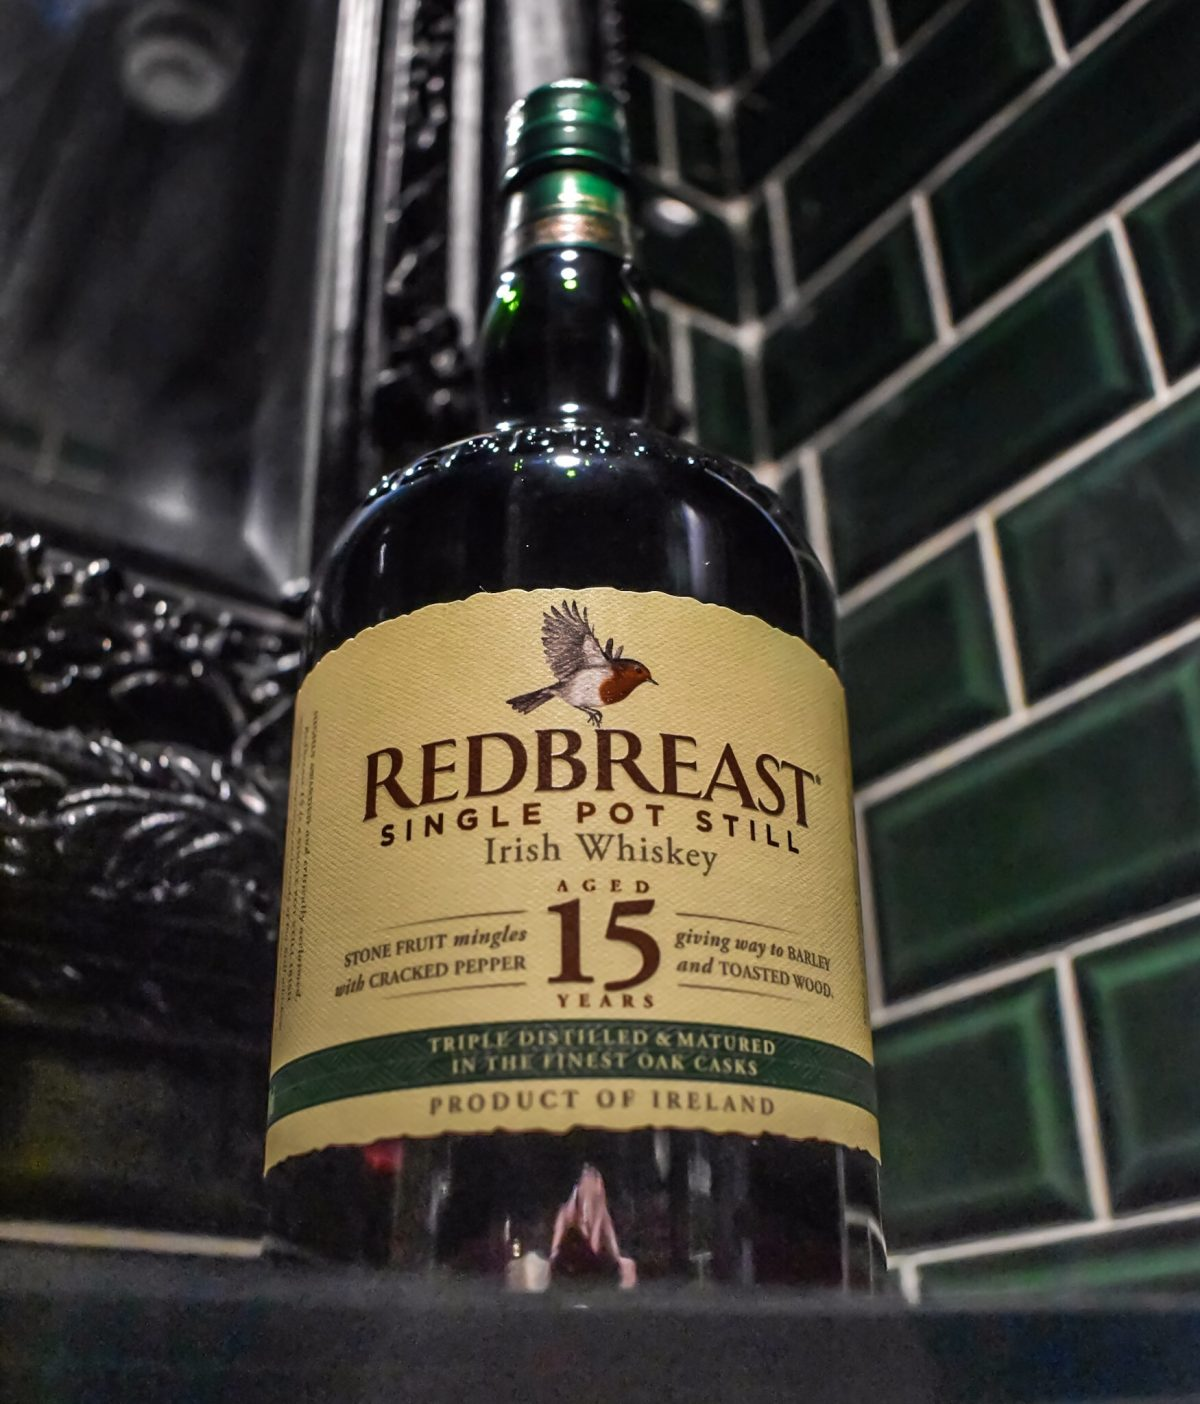 Sunday Tipple with Redbreast